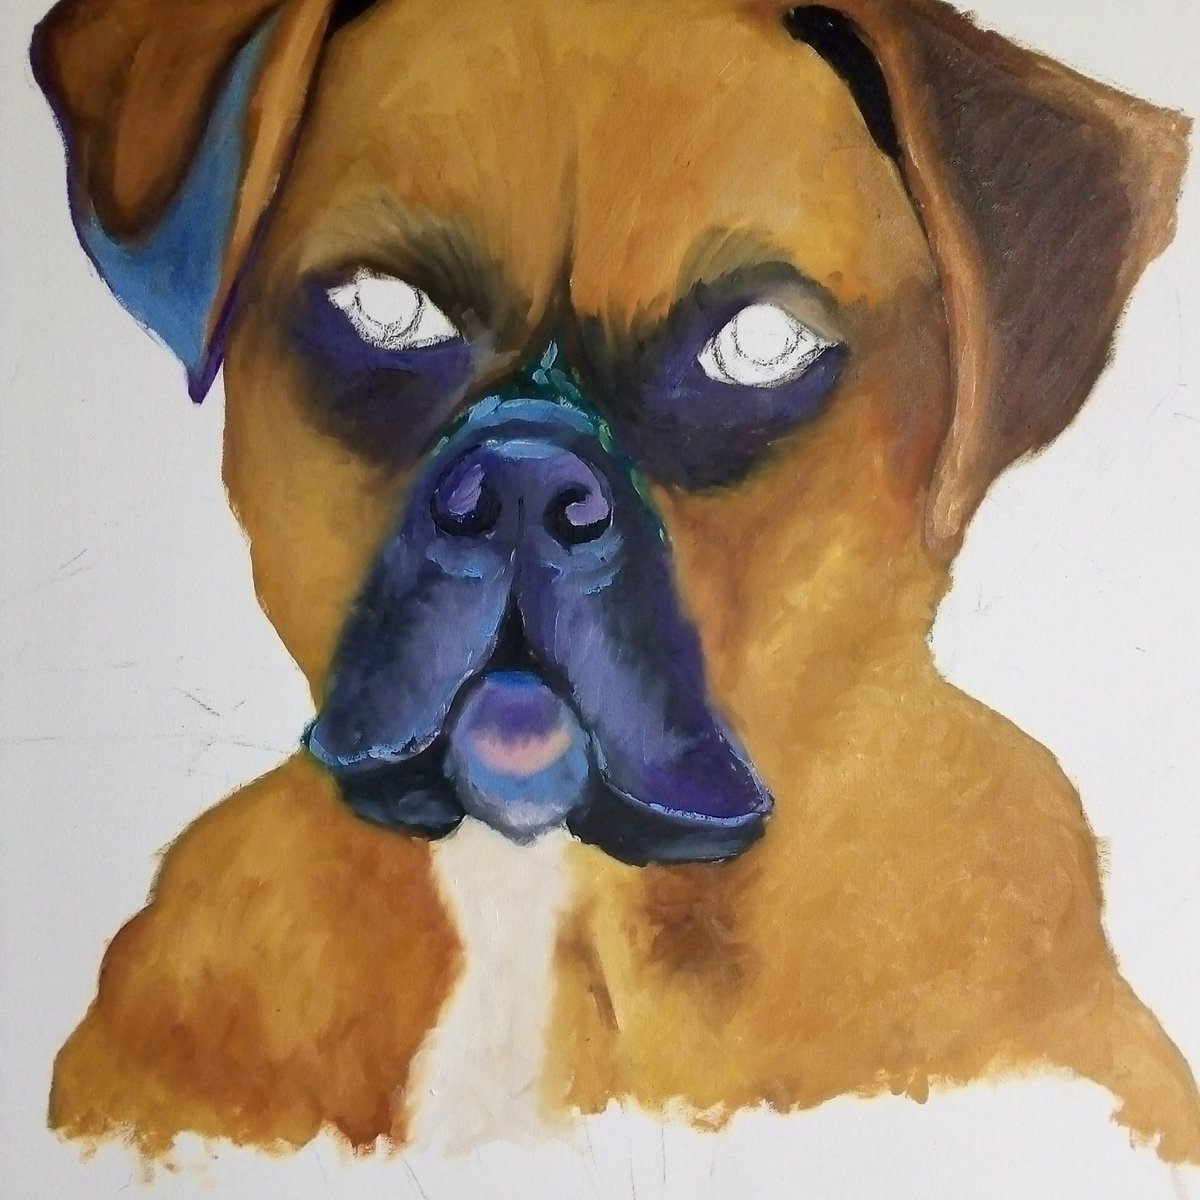 #Doglover  Work In progress  Oil paint on canvas <br>http://pic.twitter.com/l0wcoZ9pEH